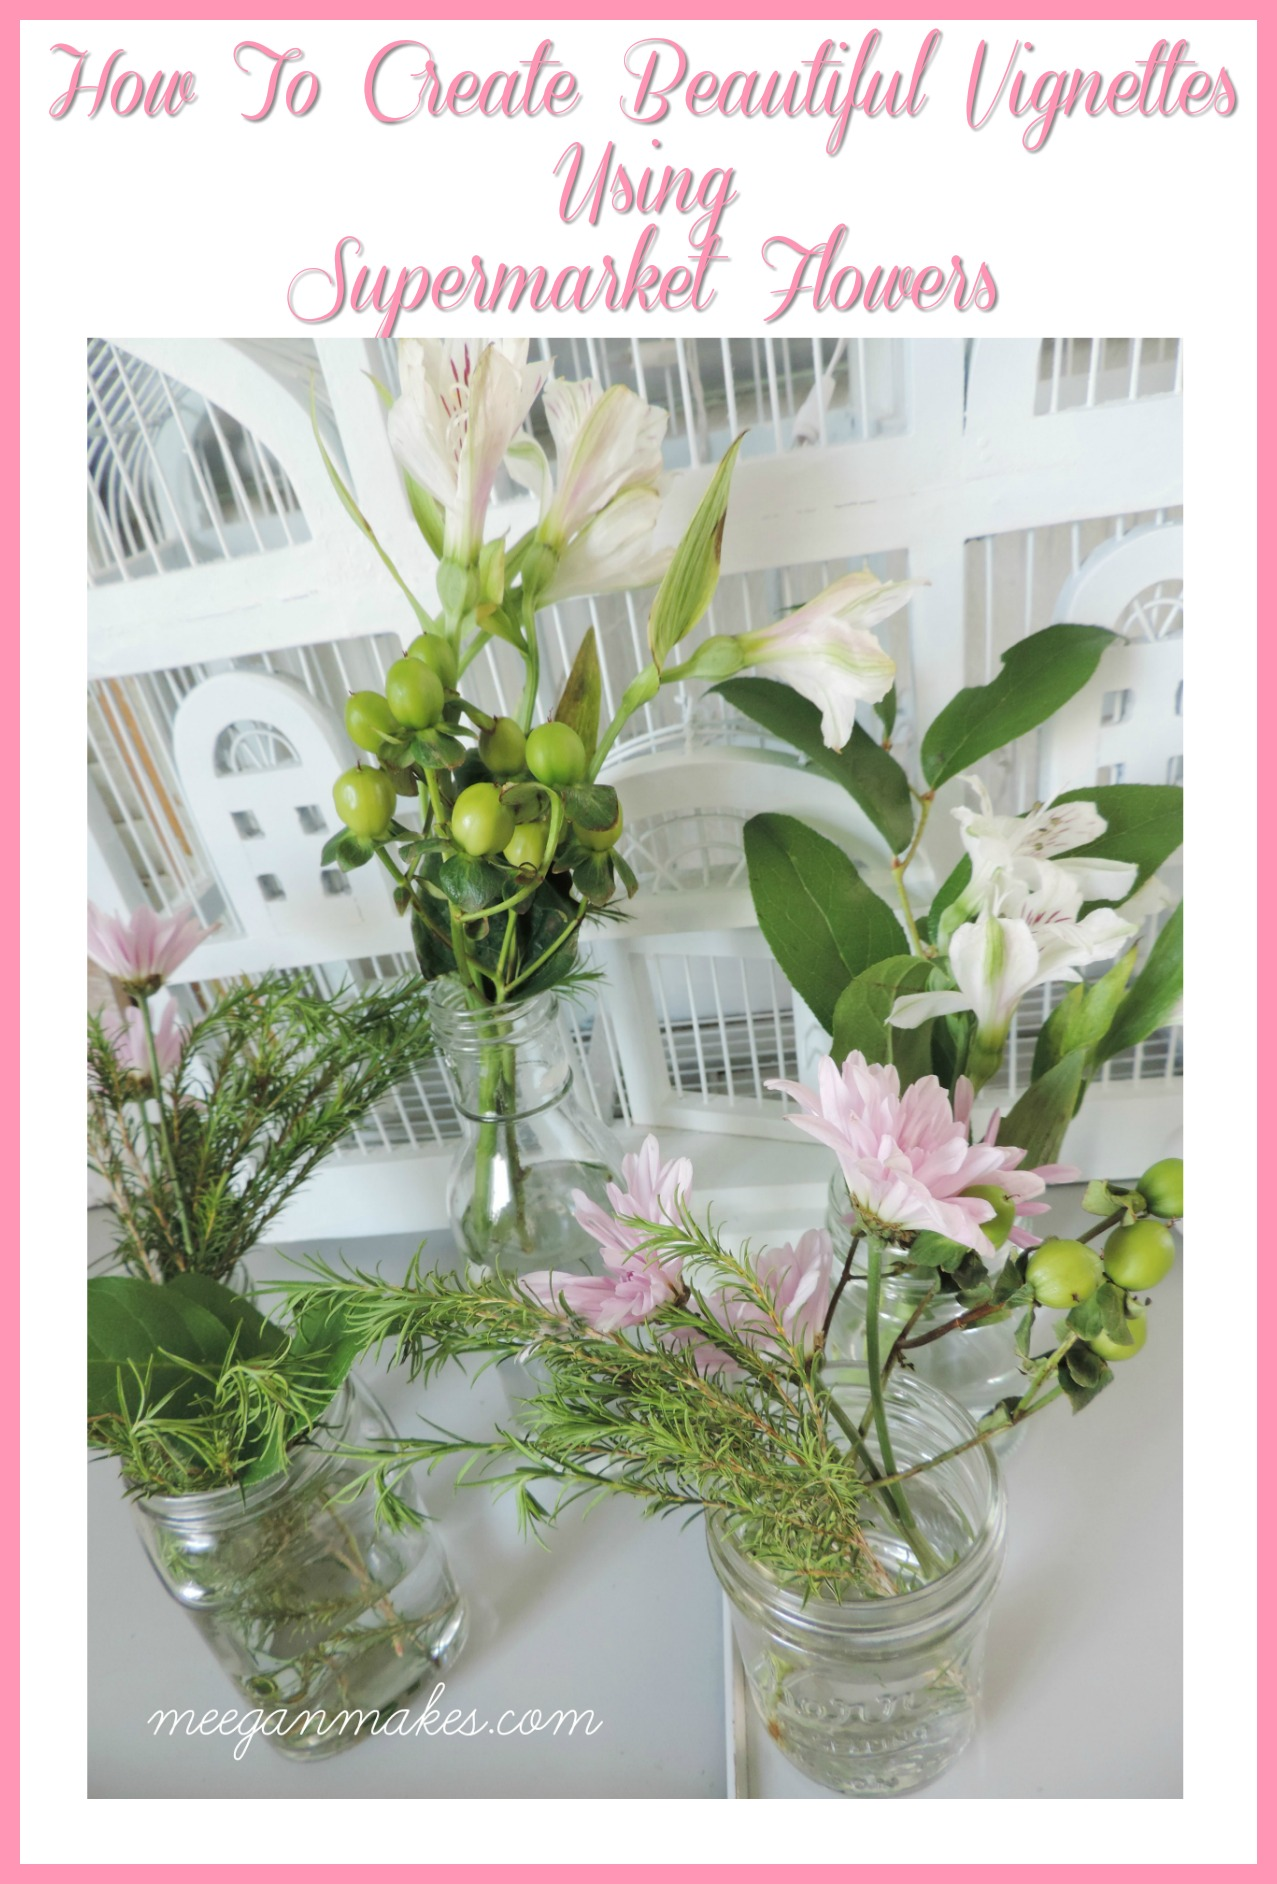 How To Create Beautiful Vignettes with Supermarket Flowers